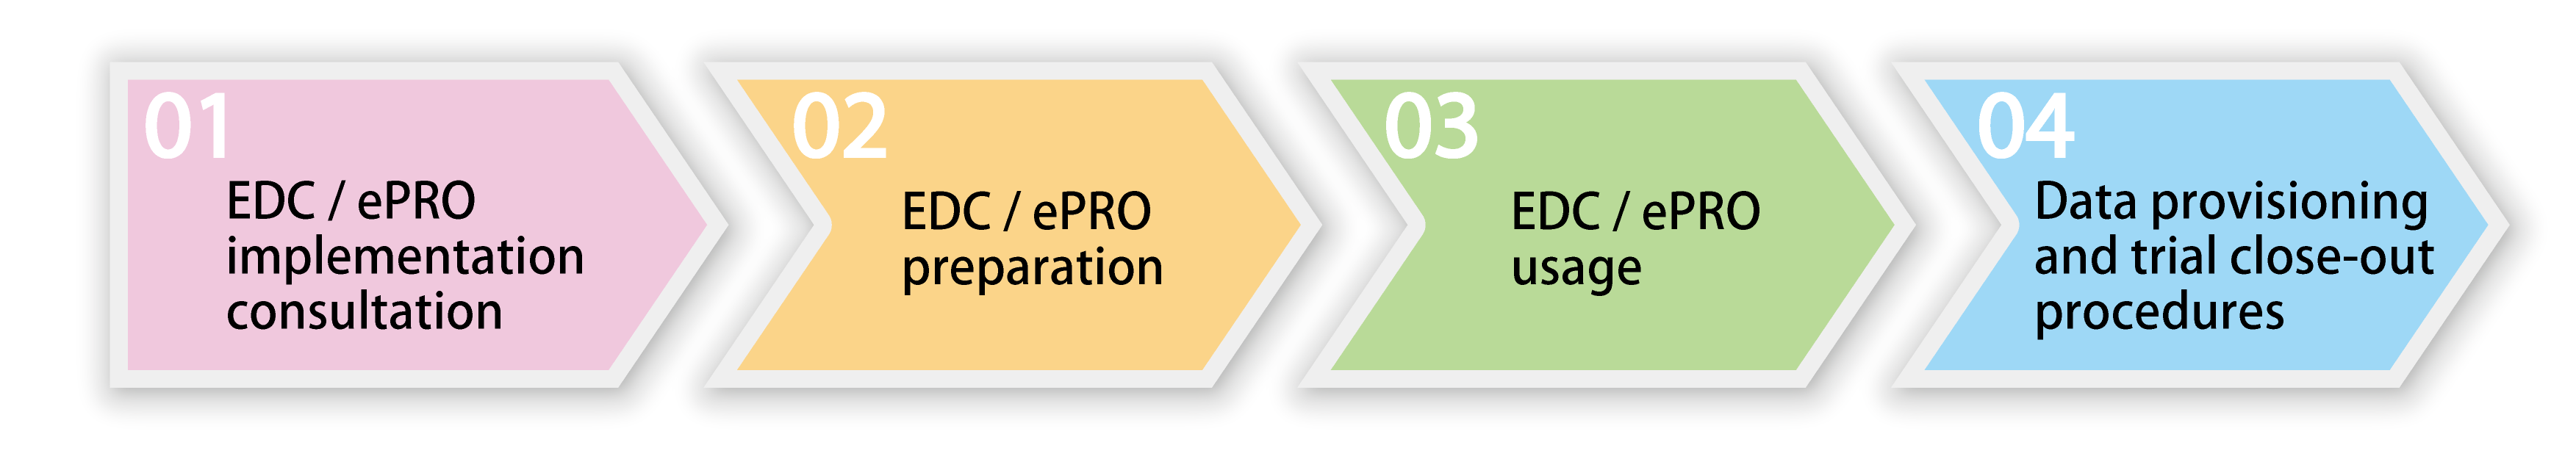 01: EDC/ePRO implementation consultation,02: EDC/ePRO preparation,03: EDC/ePRO usage,04: Data provisioning and trial close-out procedures